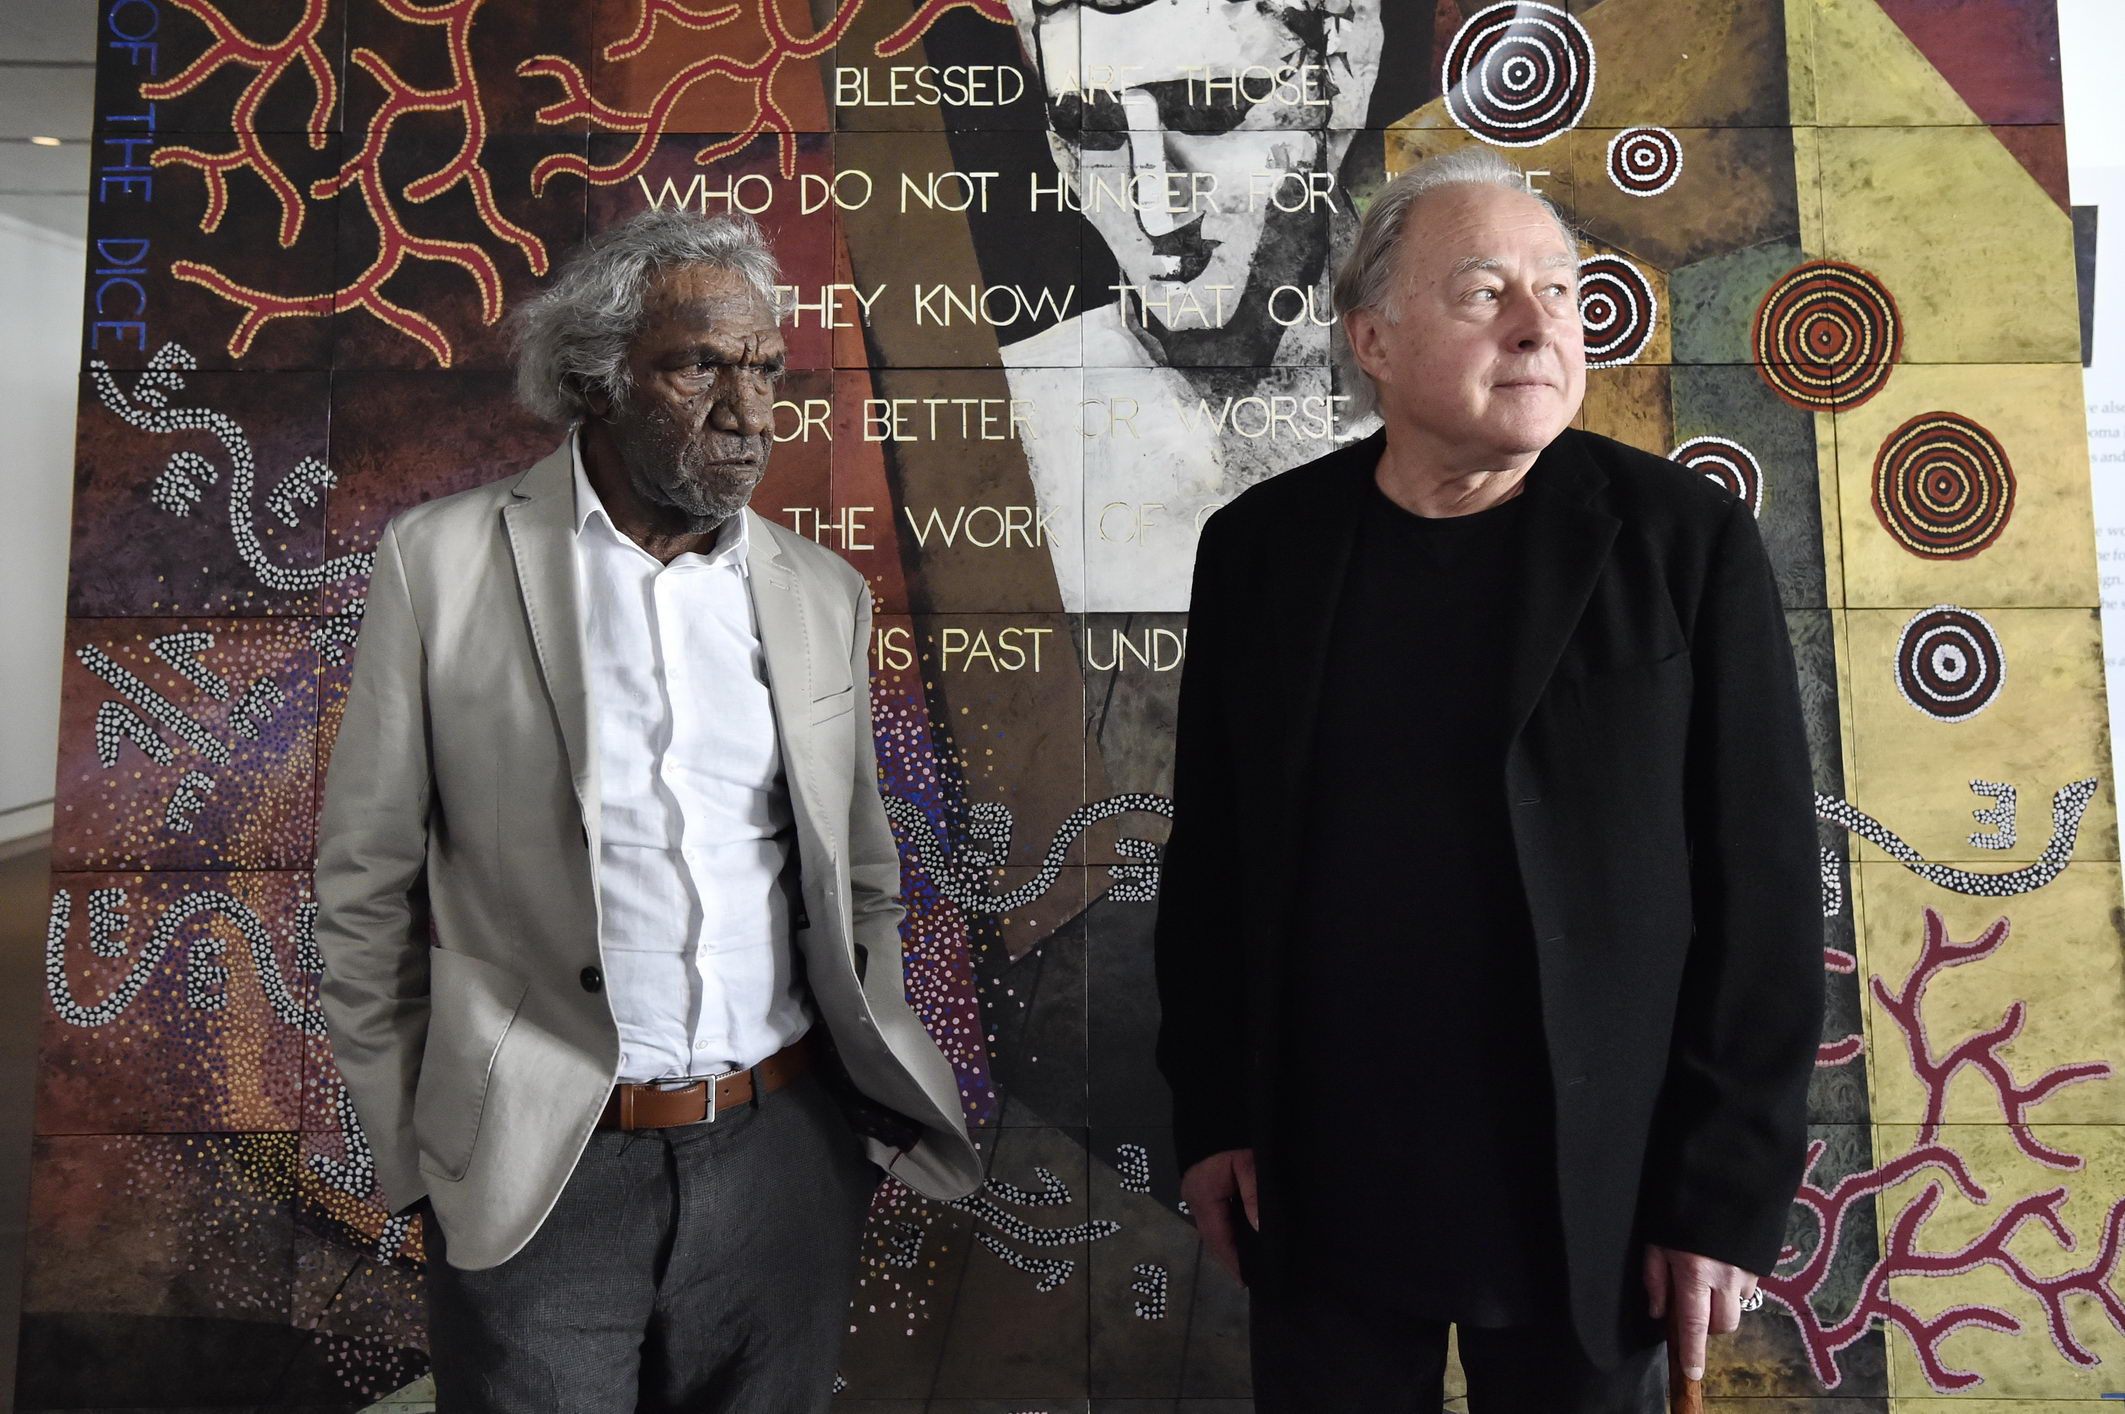 Image: Michael Nelson Jagamara and Imants Tillers unveiling  The Messenger  at Parliament House, Canberra. Photographs: DPS/Auspic.